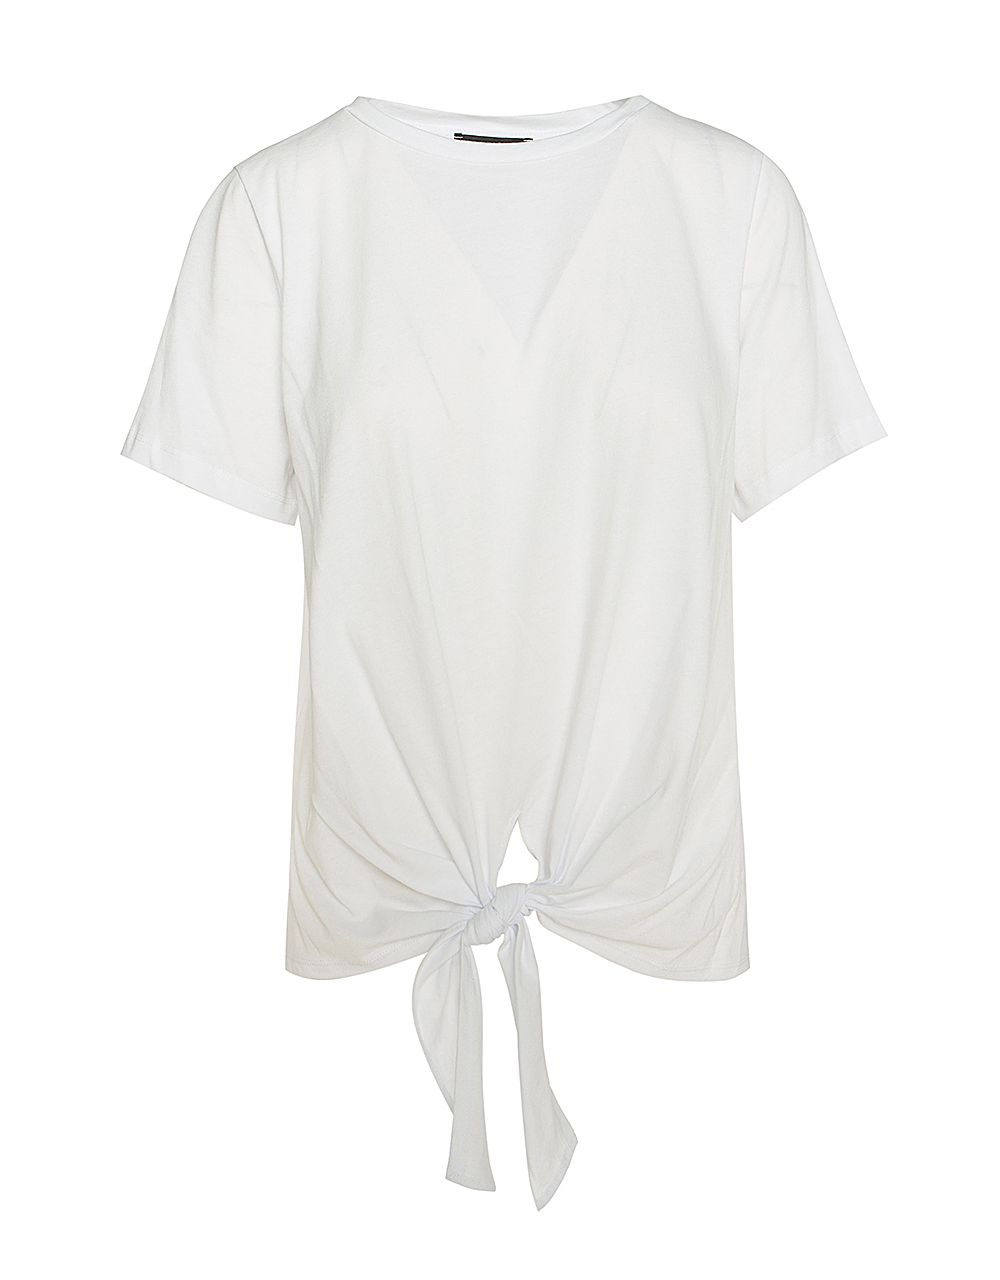 COTTON TOP WITH FRONT TIE